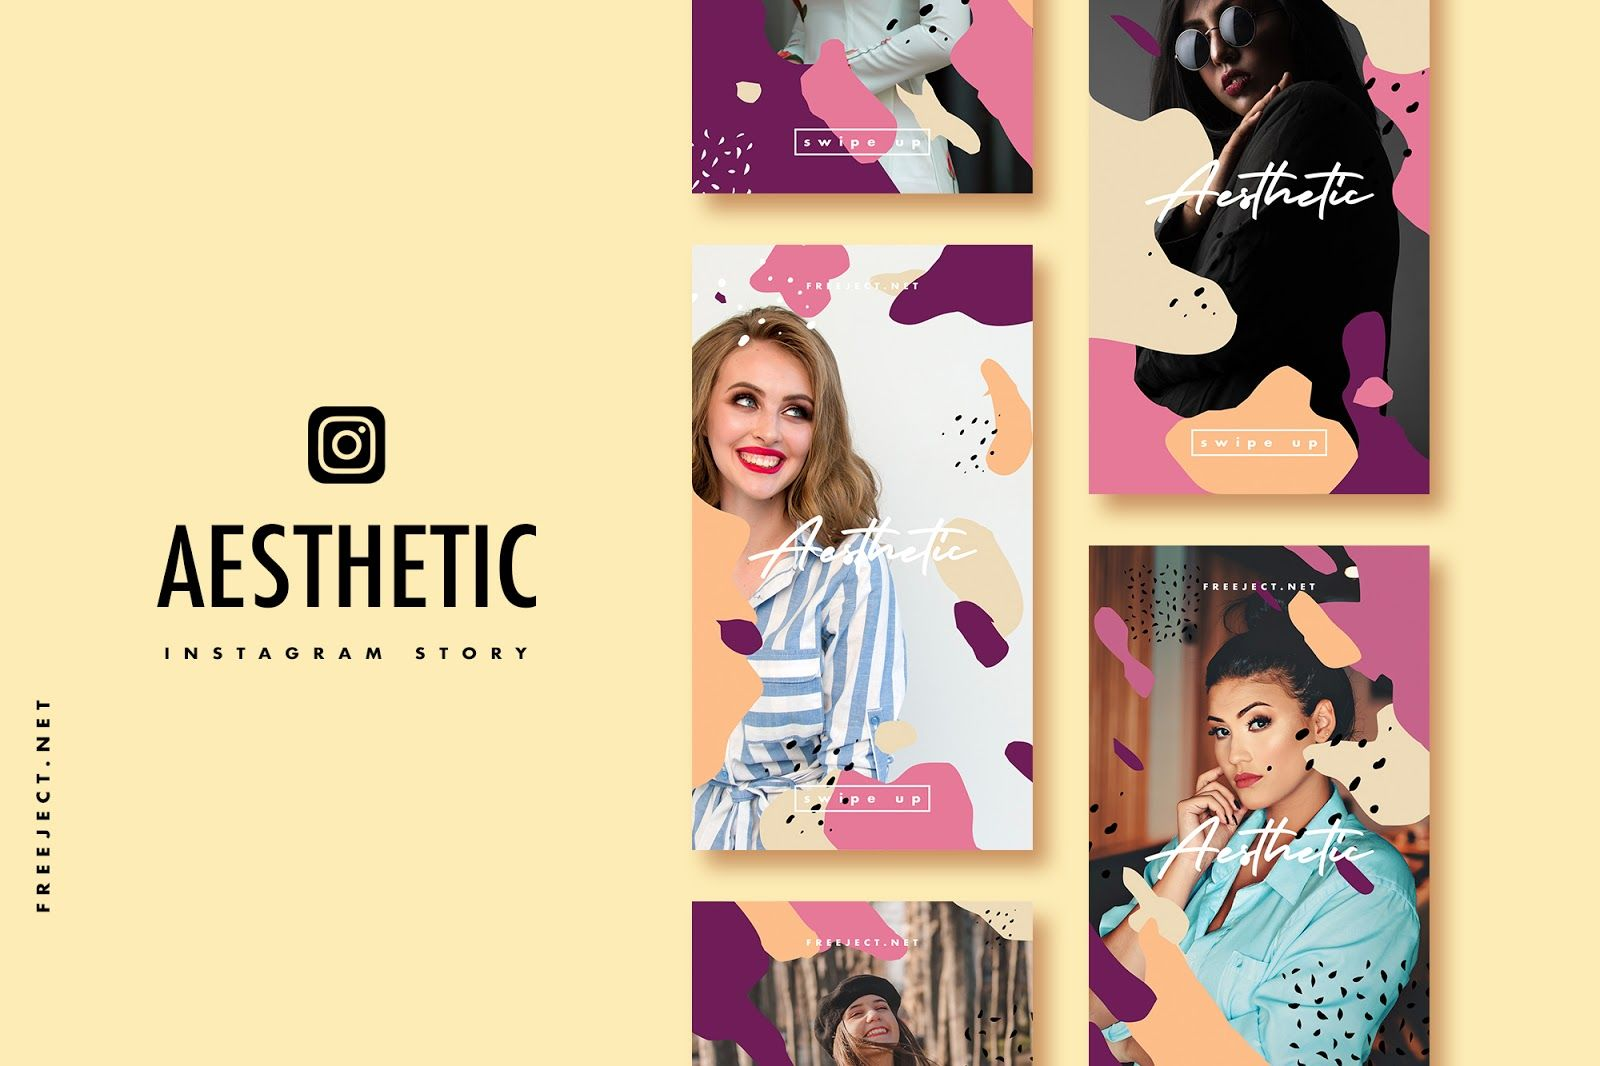 Free Download Aesthetic Shape Instagram Story Template Psd File Free Instagram Instagram Story Template Instagram Story